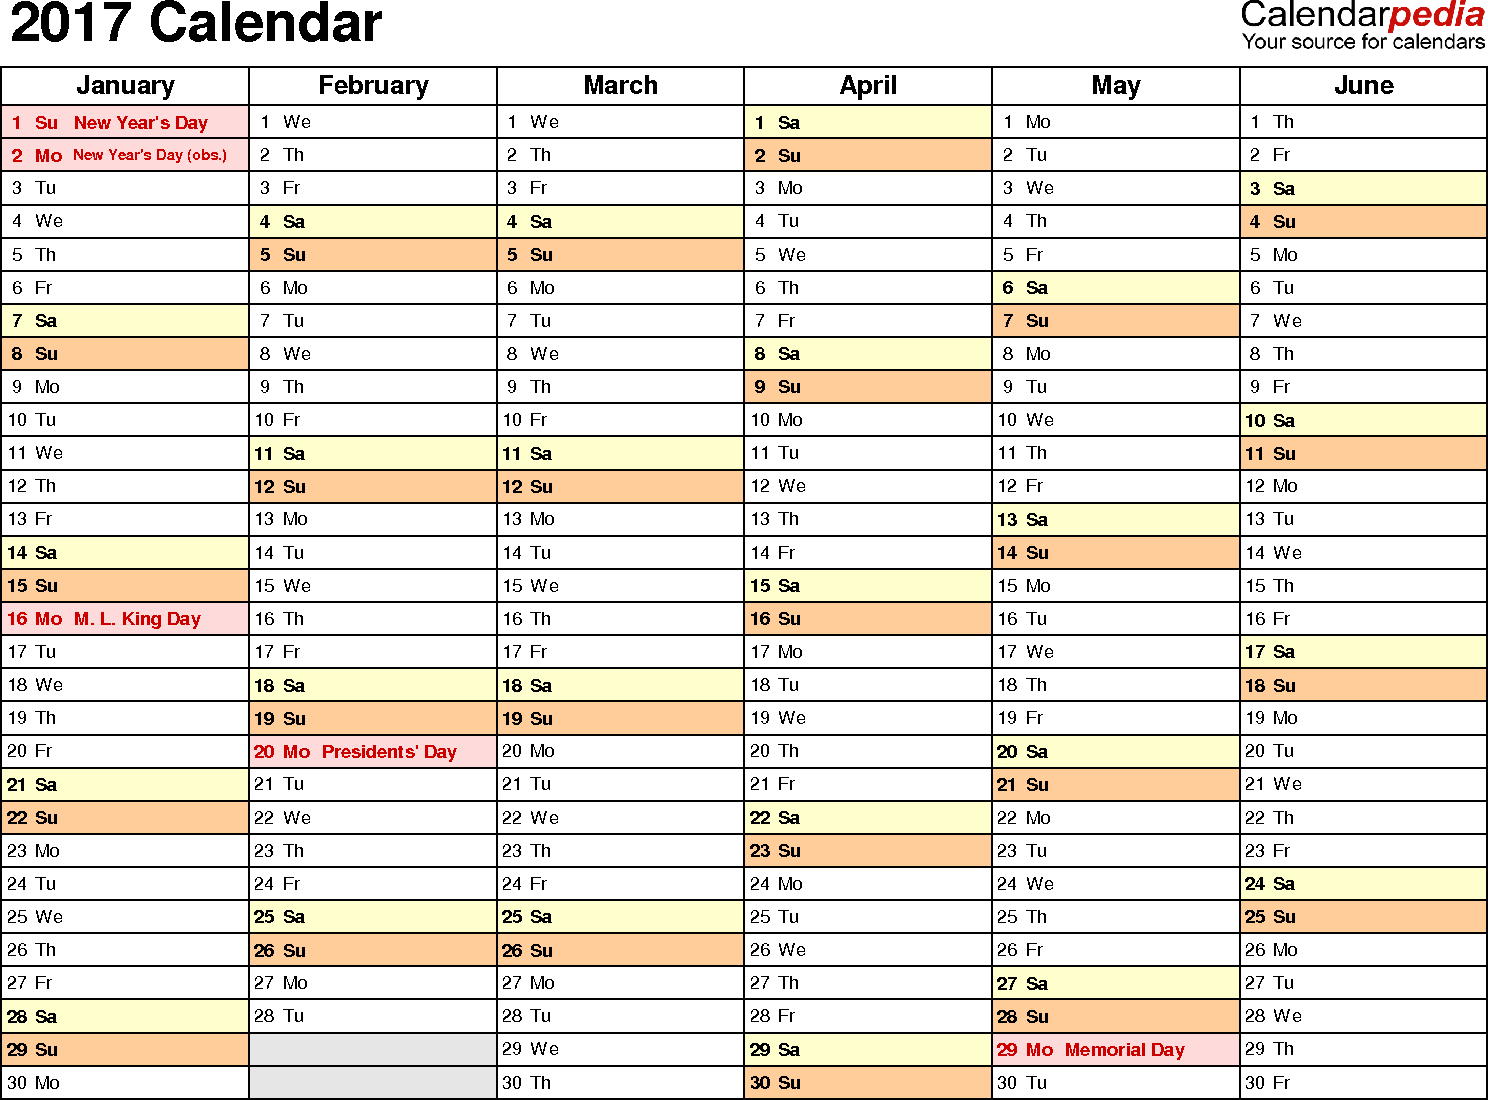 Ediblewildsus  Surprising  Calendar  Download  Free Printable Excel Templates Xls With Lovely Template   Calendar For Excel Months Horizontally  Pages Landscape Orientation With Awesome Standard Deviation Formula In Excel  Also Protect Formulas In Excel  In Addition Excel  Set Print Area And Excel Function Text As Well As Pareto Analysis In Excel Template Additionally Excel Central Mall From Calendarpediacom With Ediblewildsus  Lovely  Calendar  Download  Free Printable Excel Templates Xls With Awesome Template   Calendar For Excel Months Horizontally  Pages Landscape Orientation And Surprising Standard Deviation Formula In Excel  Also Protect Formulas In Excel  In Addition Excel  Set Print Area From Calendarpediacom